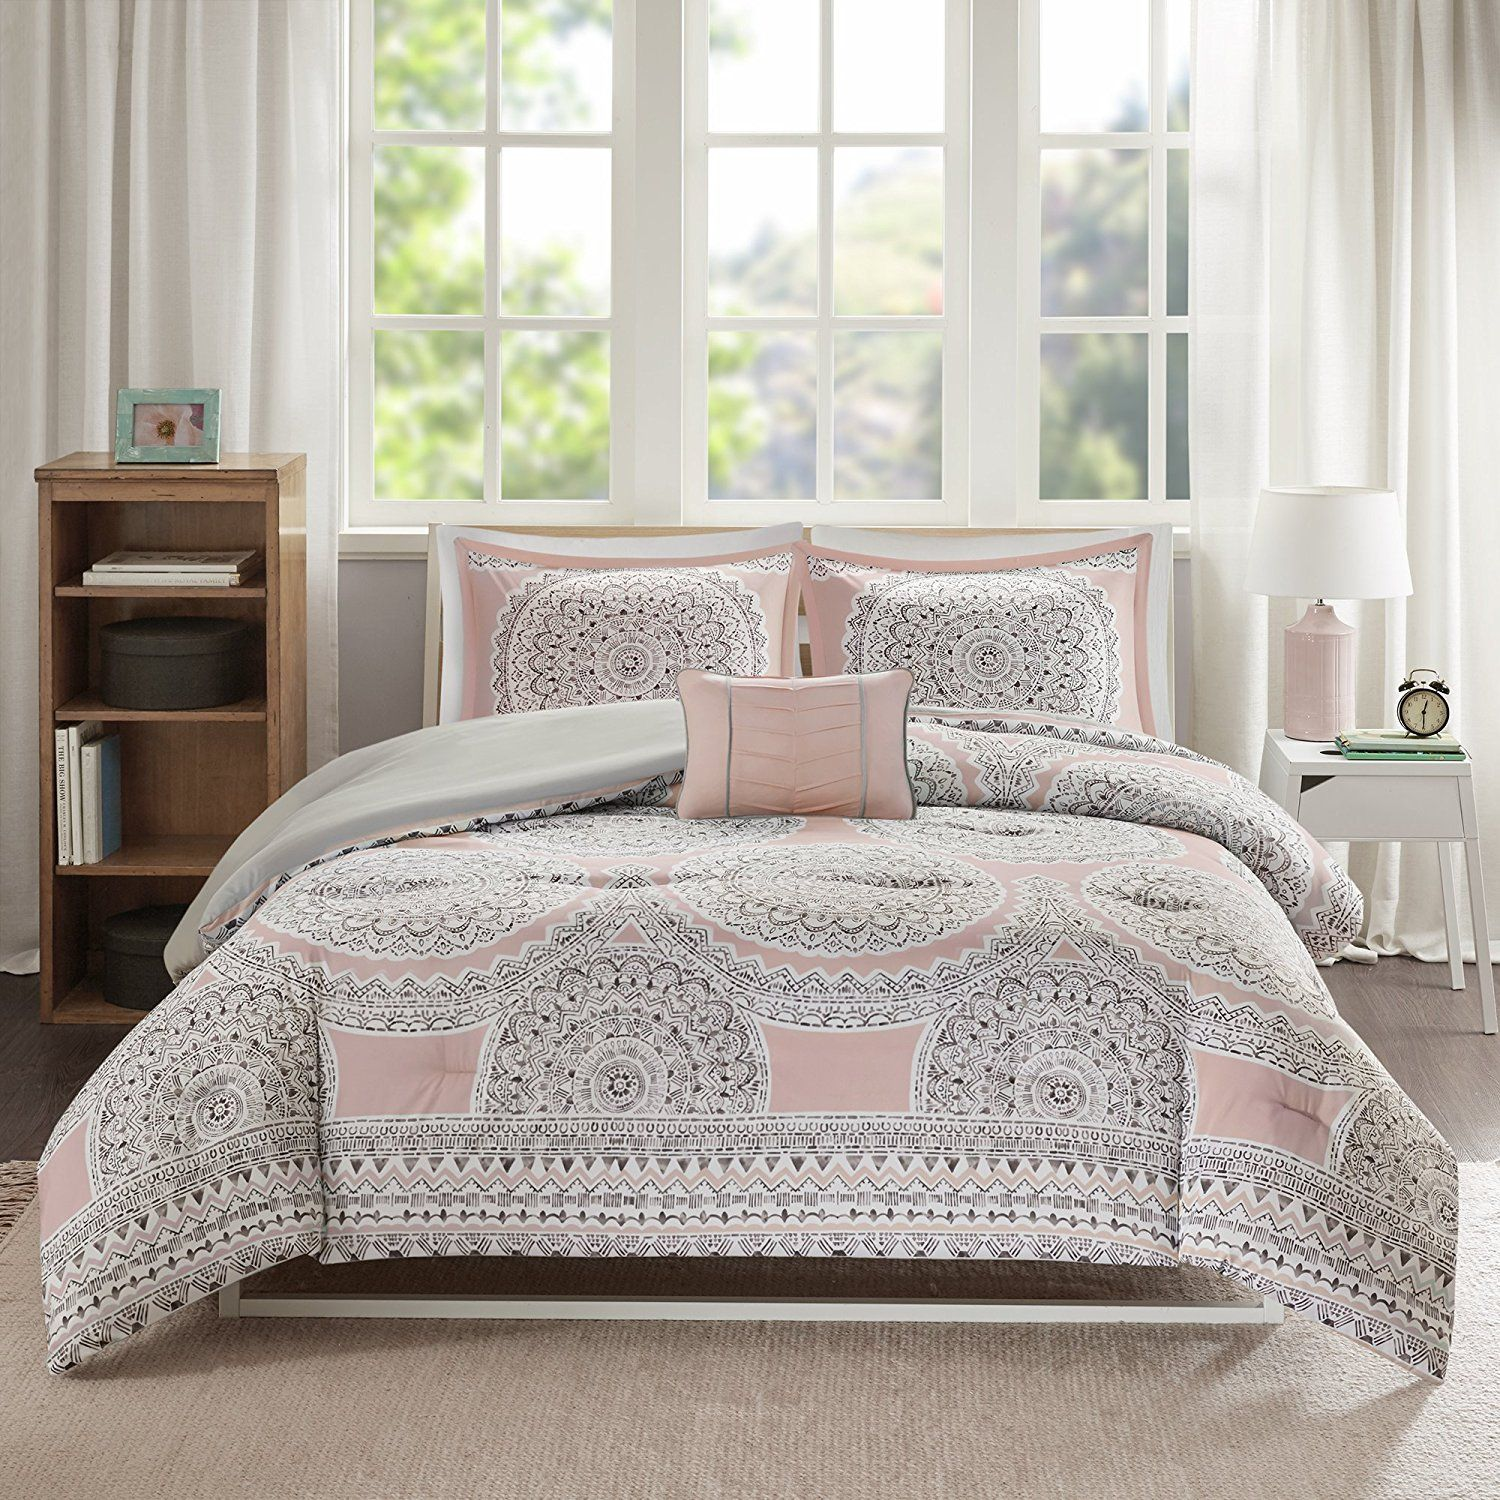 Amazon Com Comfort Spaces Adele Comforter Set 3 Piece Blush Grey Medallions Print Twin Twin Xl S Comforter Sets Bed Comforter Sets Space Comforter